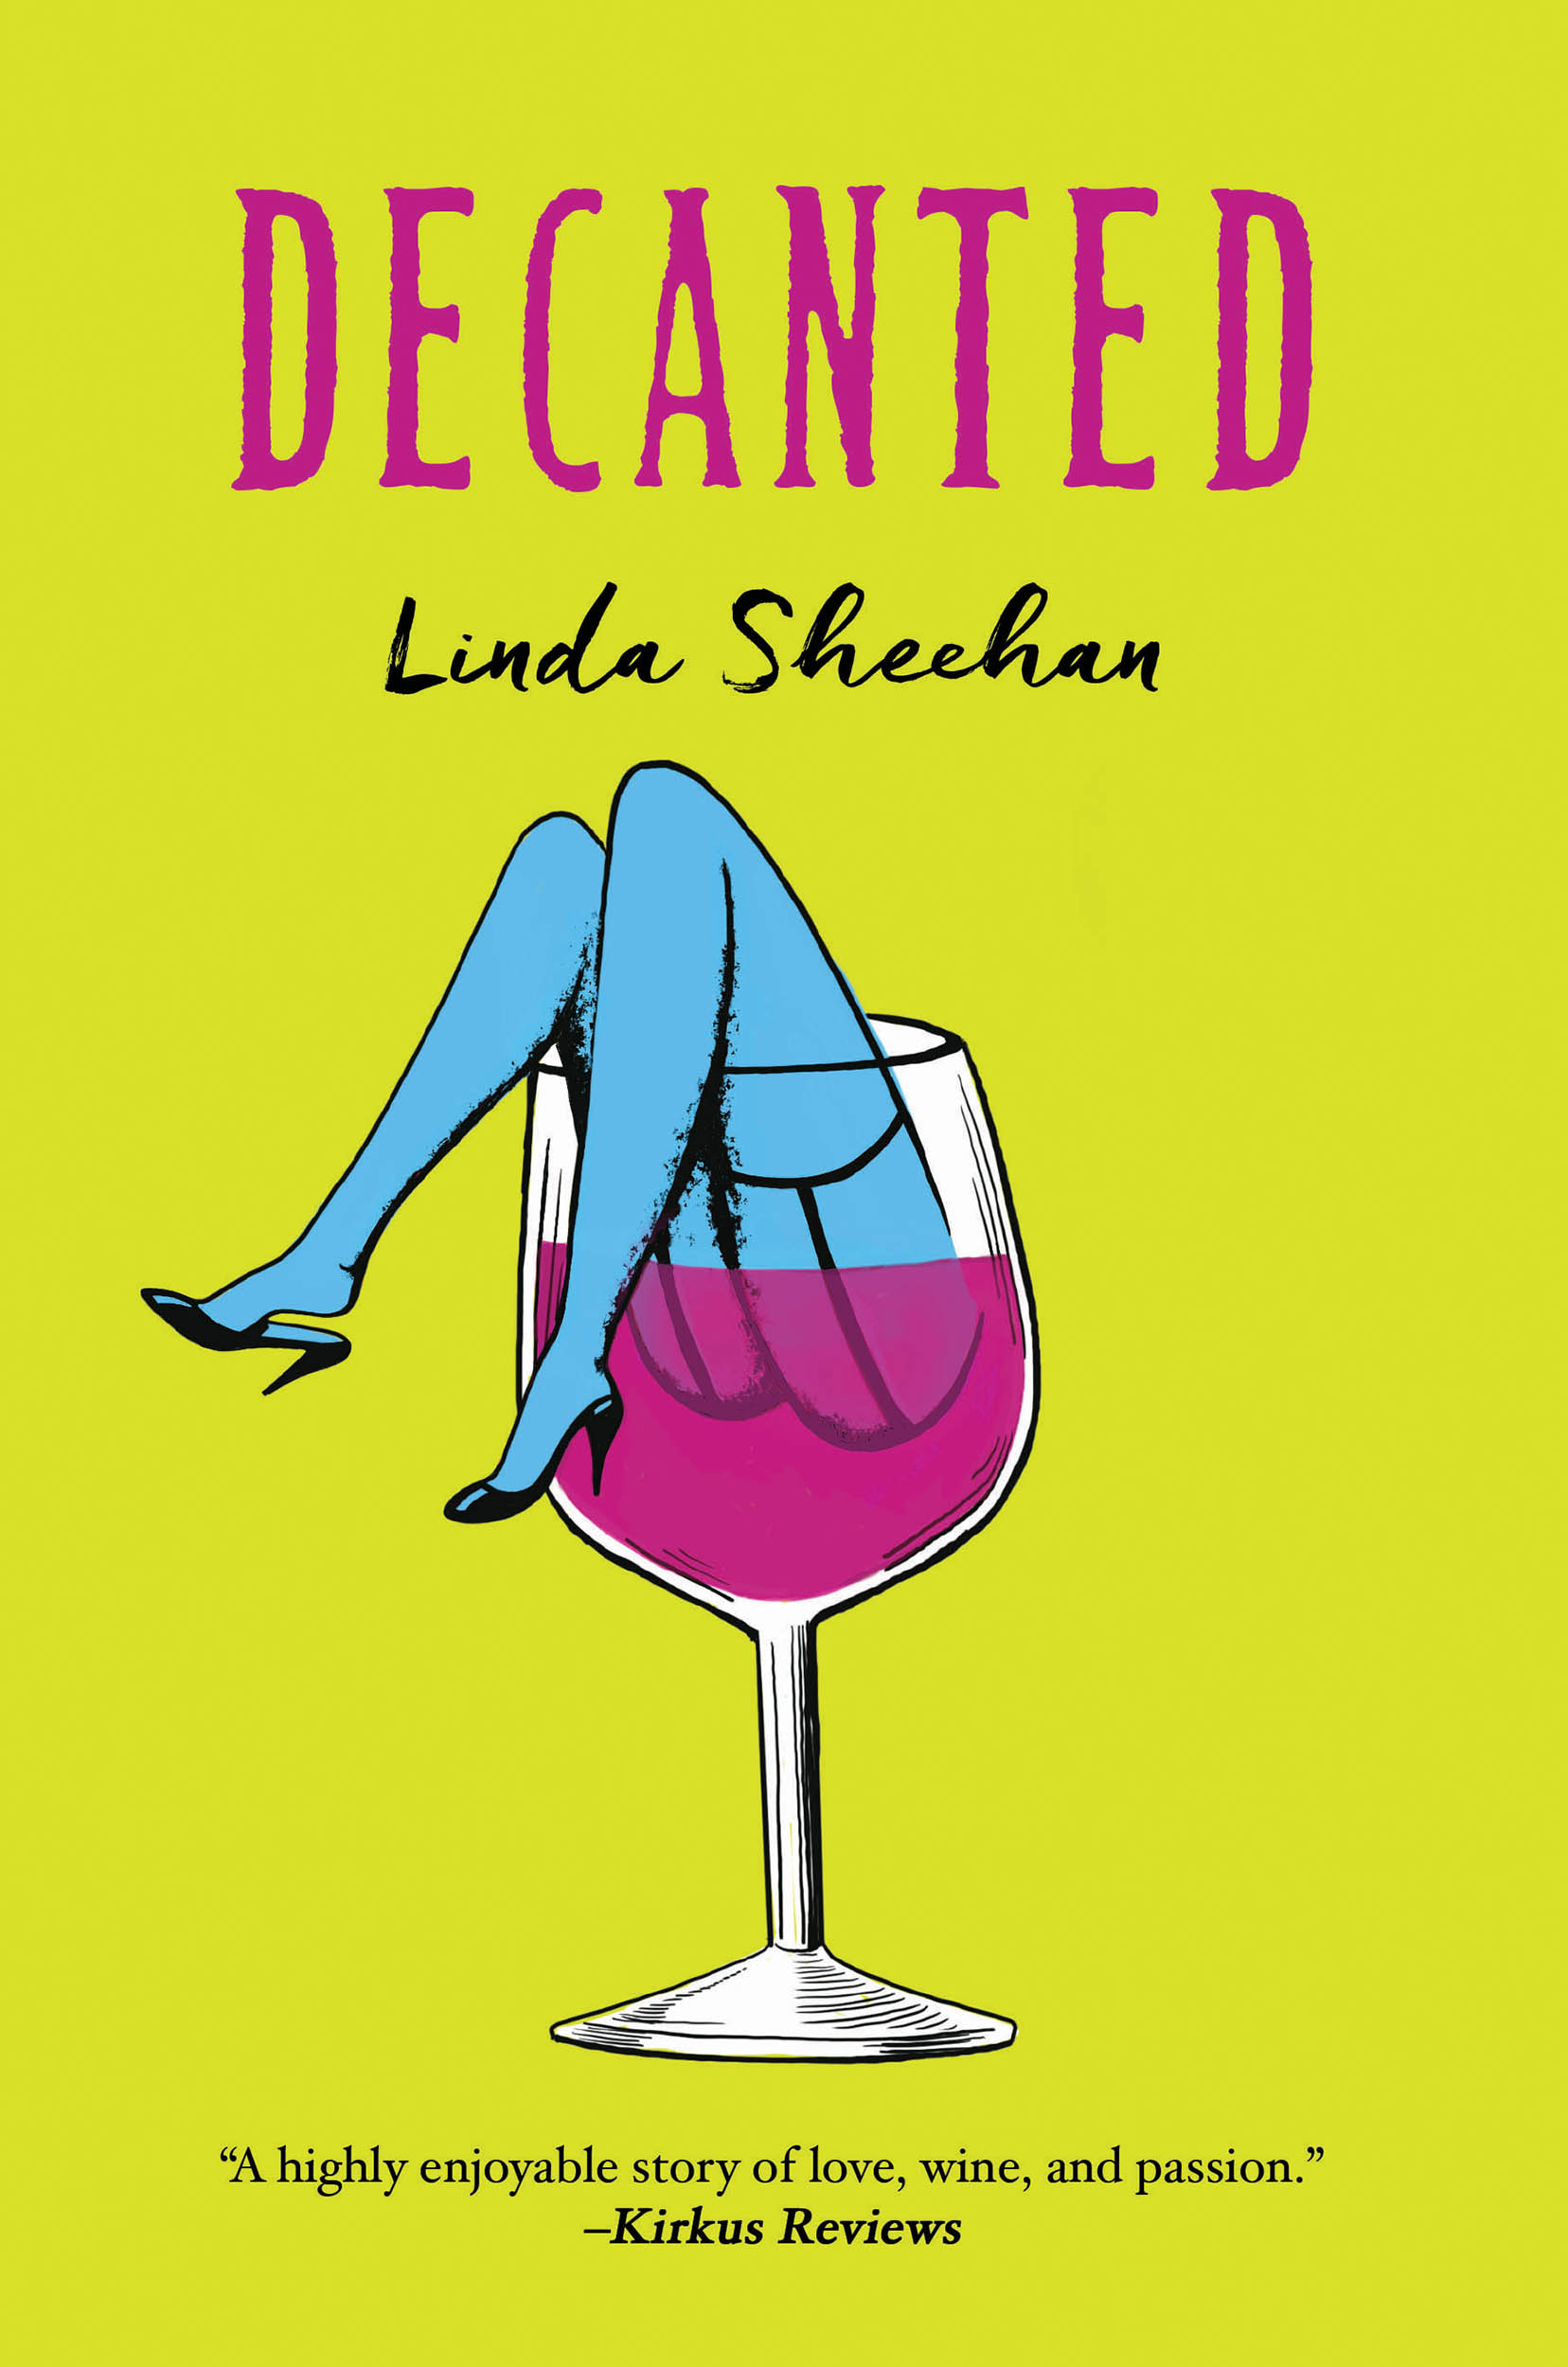 Book cover for Decanted with